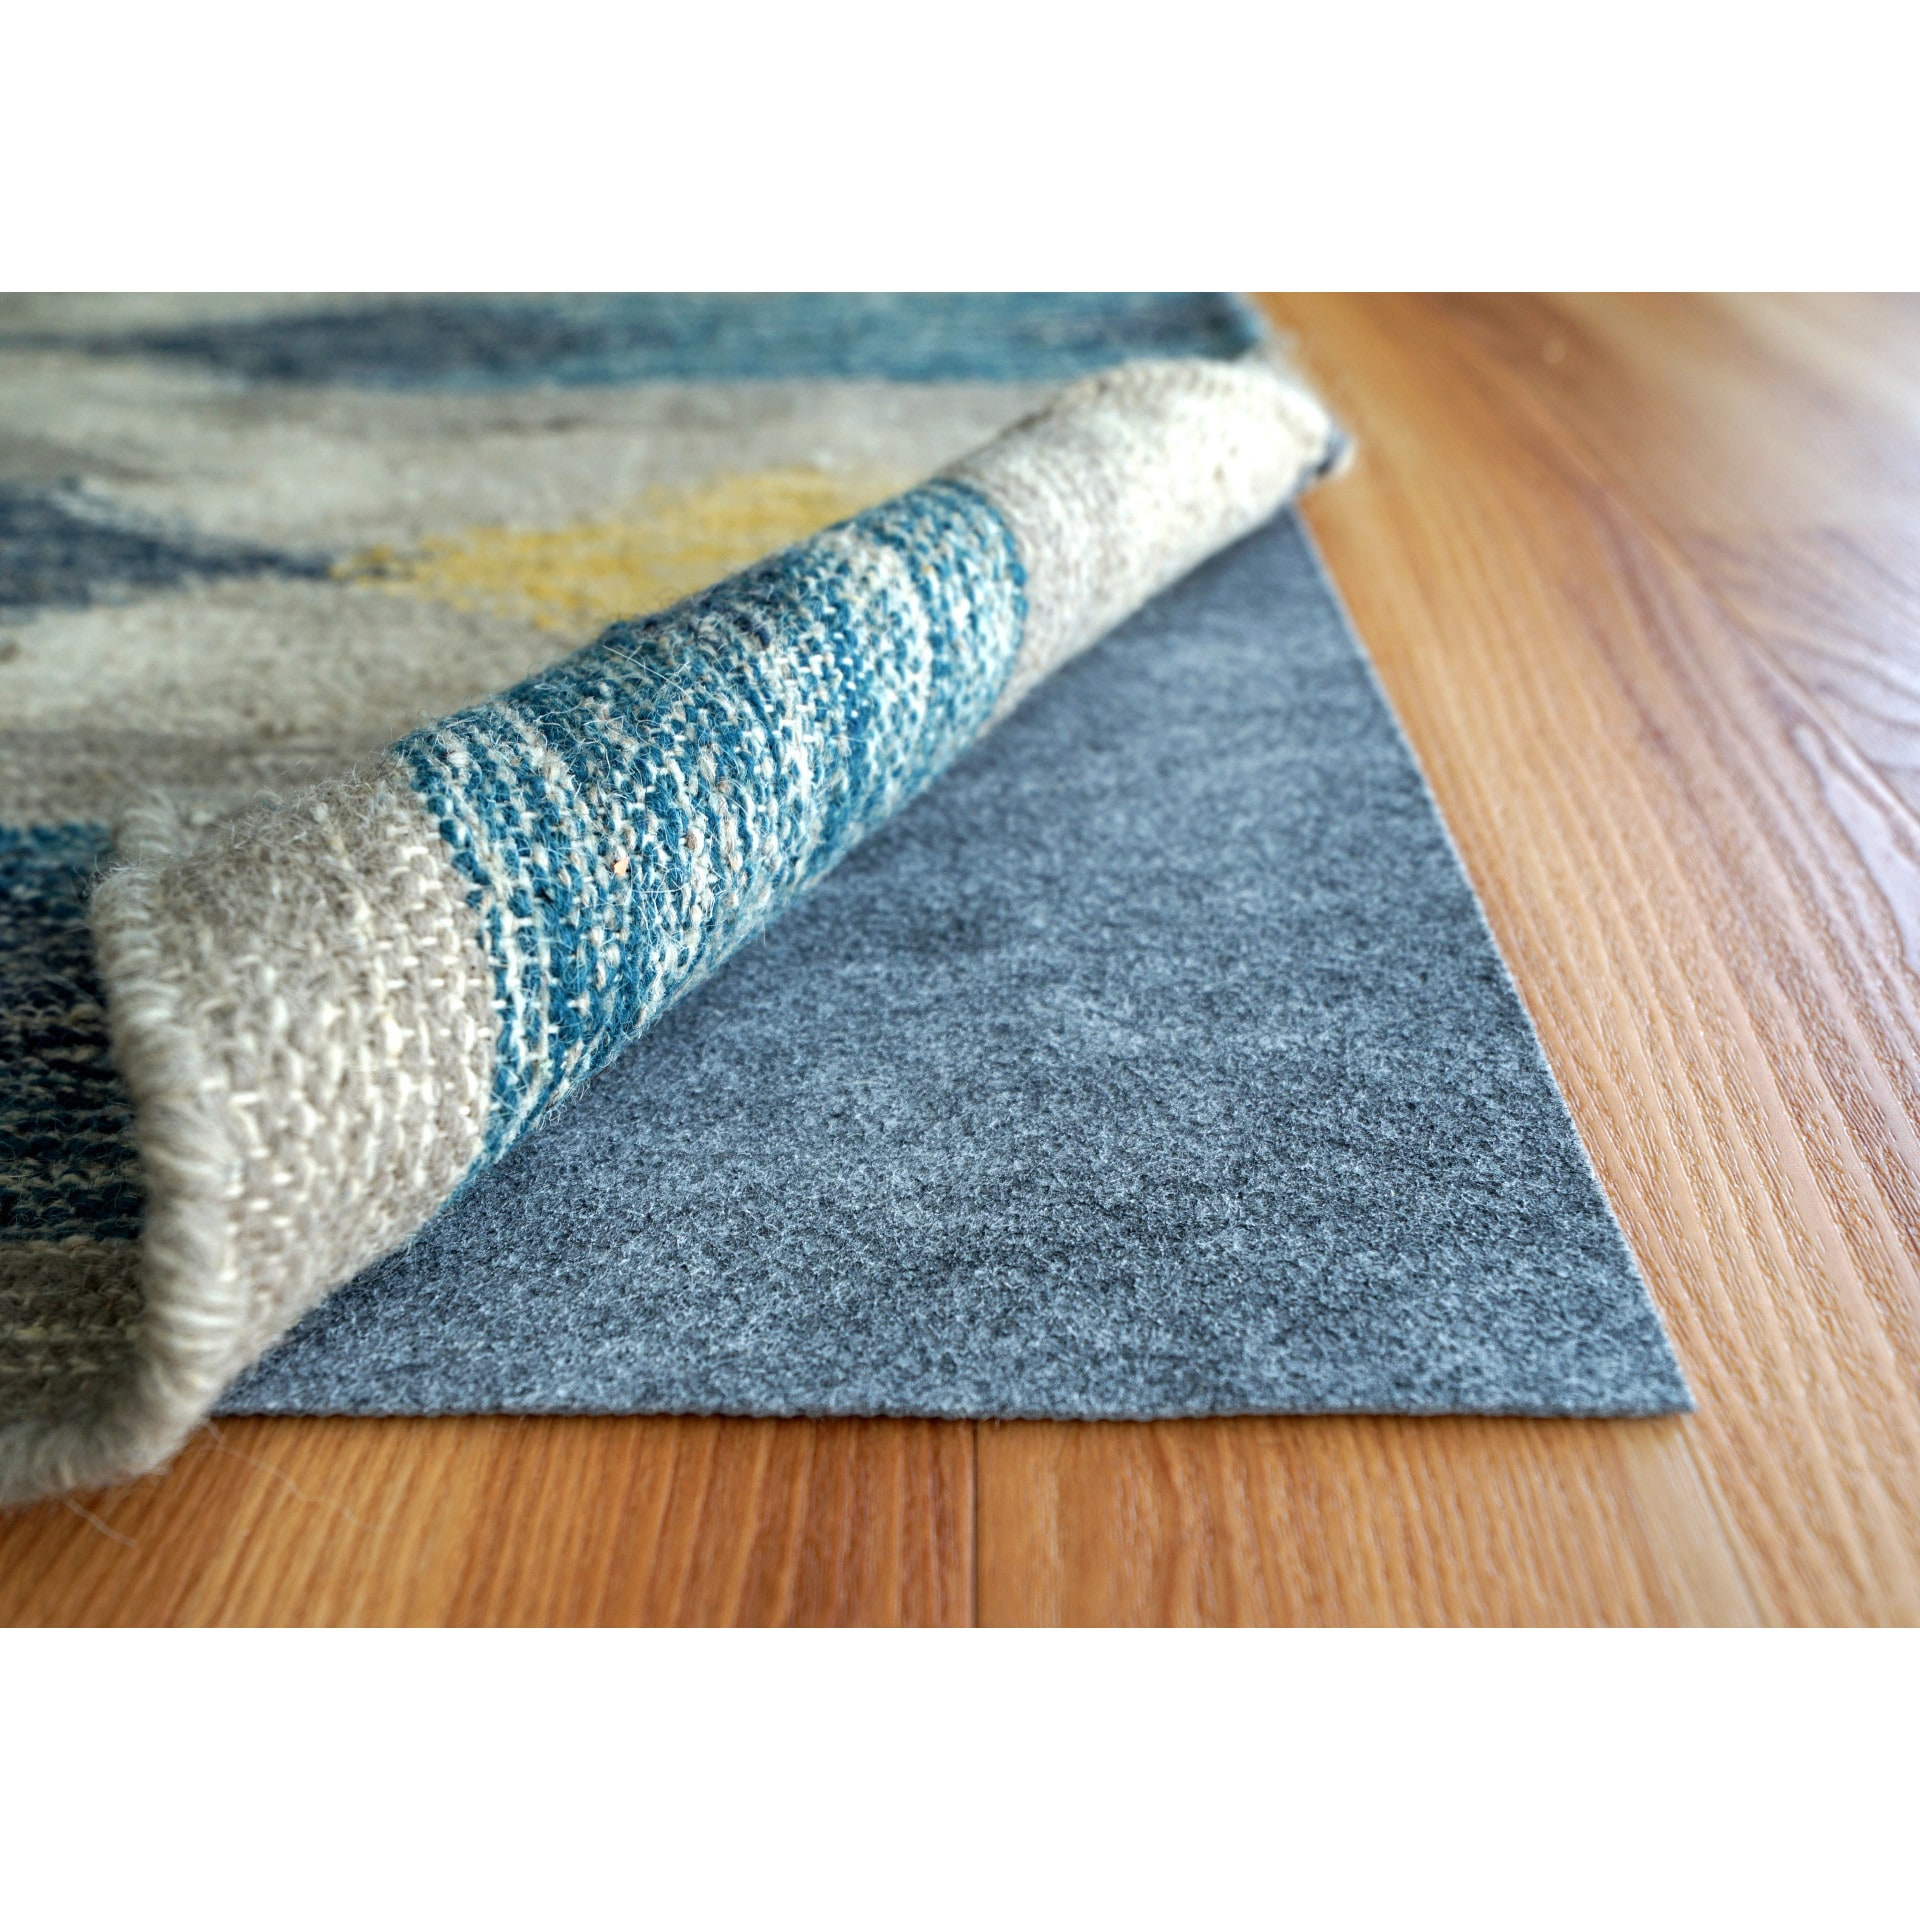 Anchorpro Low Profile Non Slip Rug Pad Grey 6 X 9